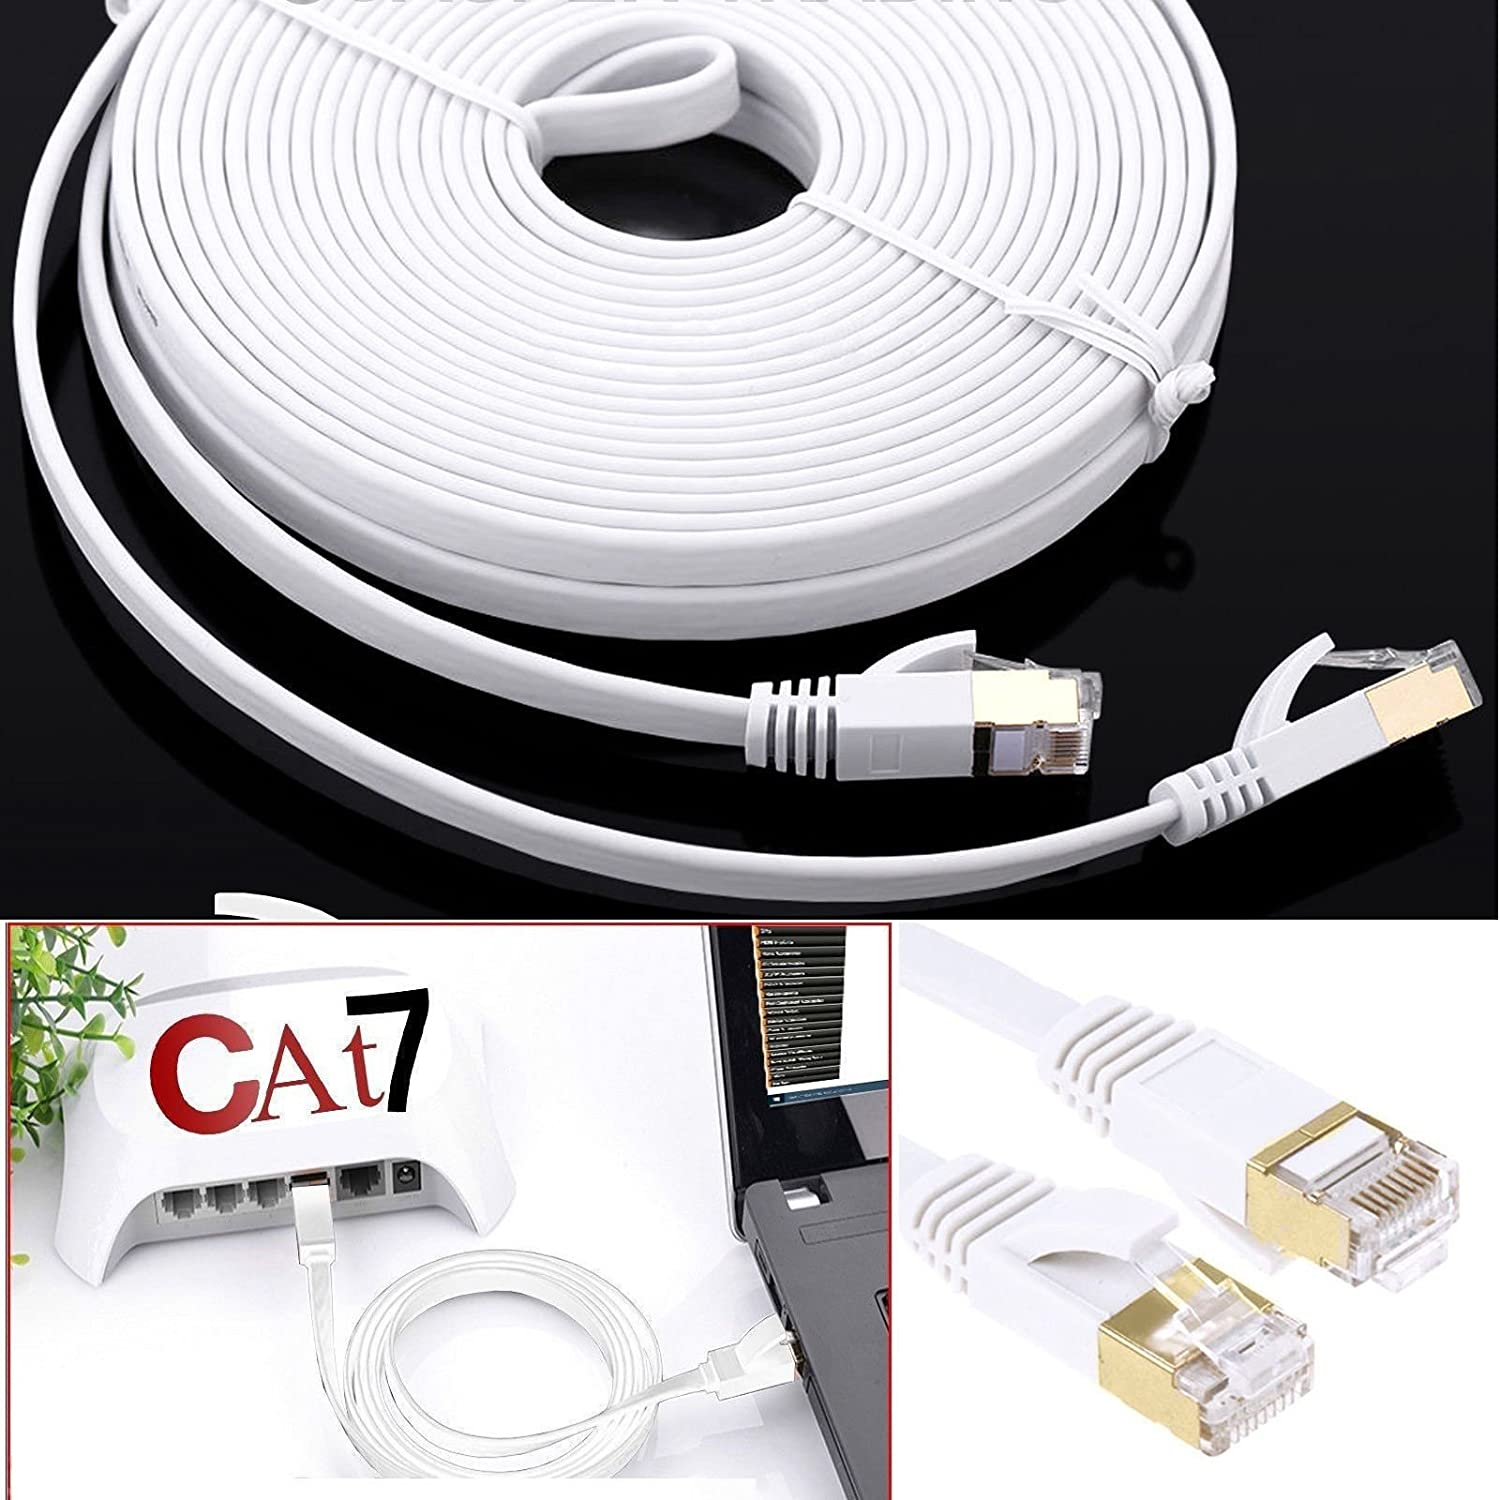 Ps3 Gigabit LAN Network Cable RJ45 STP Patch Cable 10 Gbps 600 MHz//S Molded Patch Cable PS4 Patch Panel Network Socket By MyCamBay Access Point PC and Network Adaptor Ethernet Cable Cat7 Switch Router Modem 1, Black